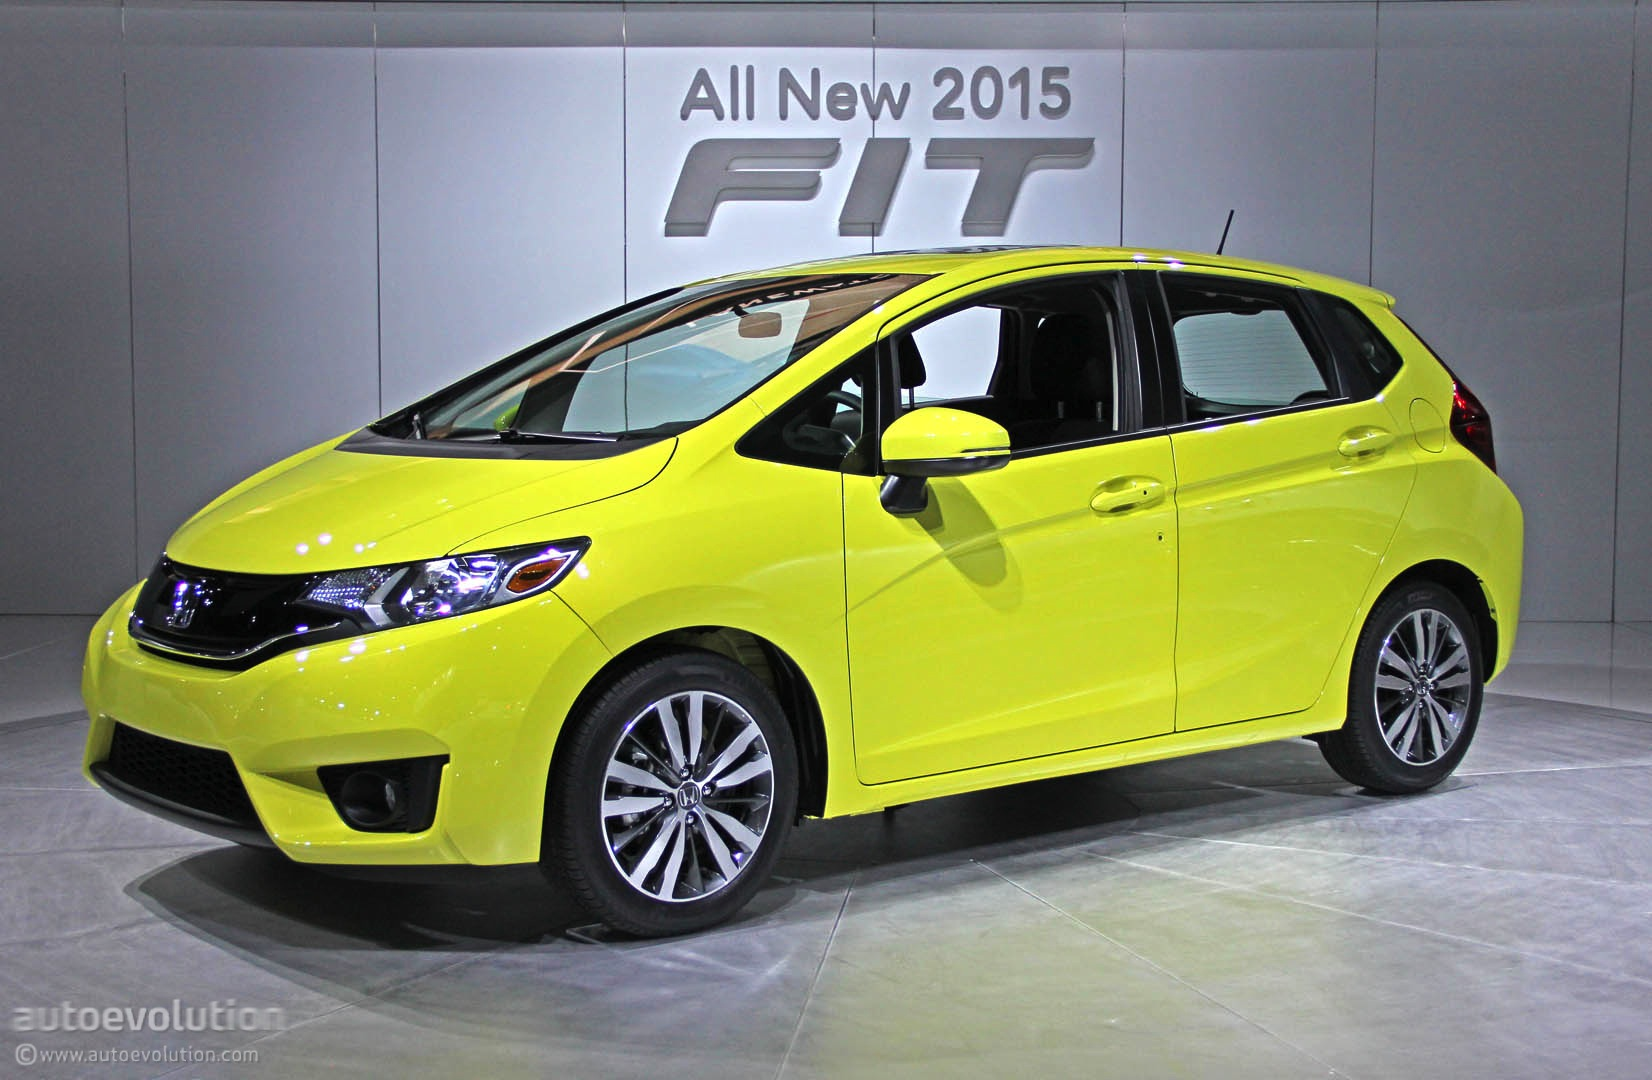 2015 Honda Fit Is a Cool New Urban Car for 15525